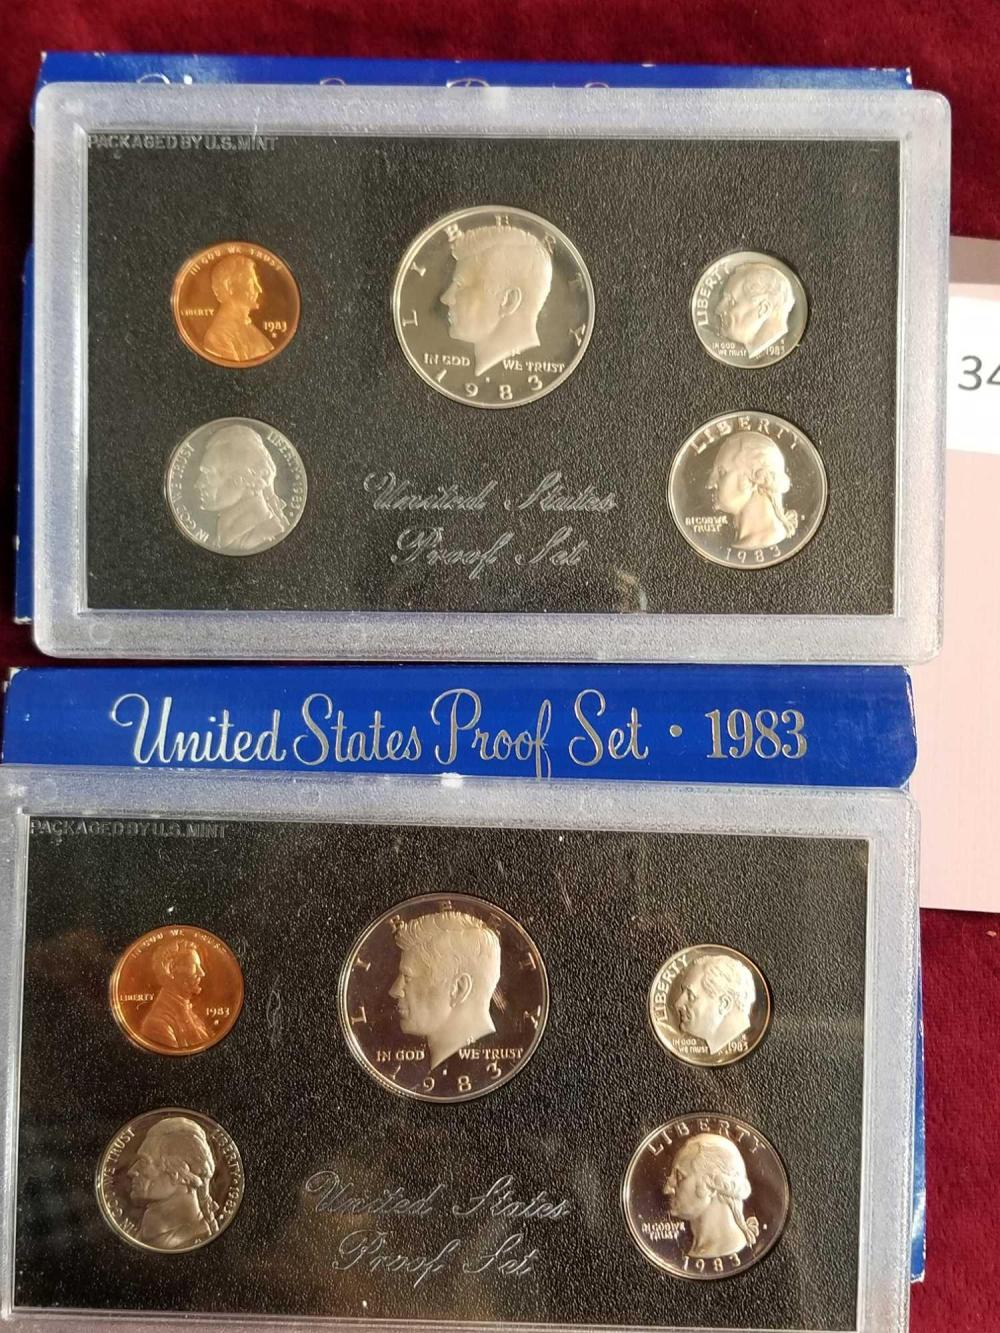 1983 U.S. COIN PROOF SETS - 2 TEMS